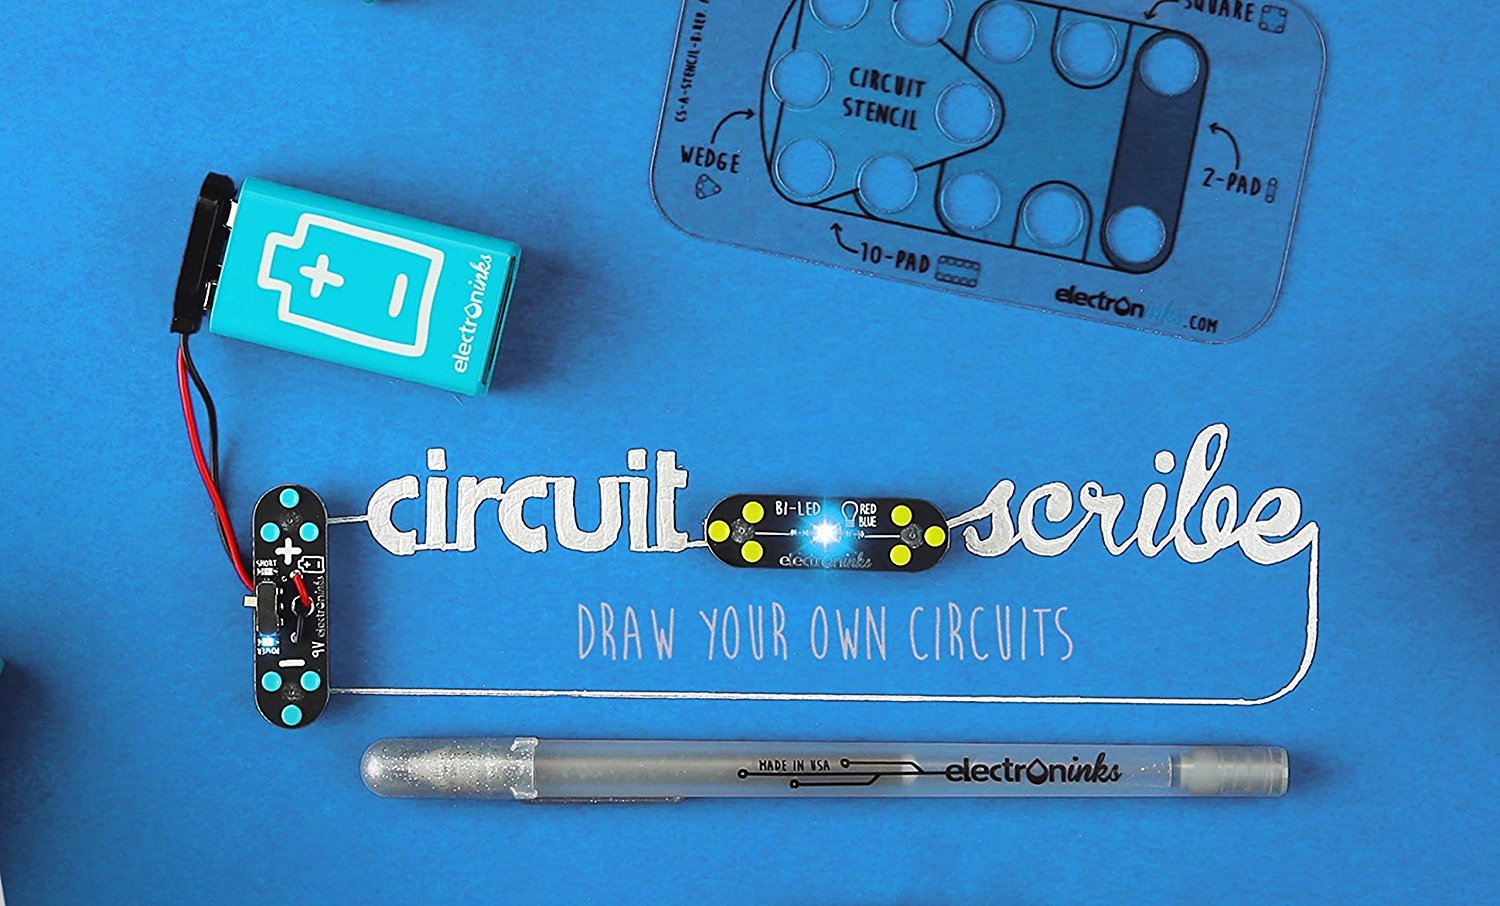 Circuit Scribe Basic Kit Includes Stem Workbook Electronic Stickers Interactive Games Chinitronics Conductive Silver Ink Pen To Learn Explore And Create Your Own Circuits Switches